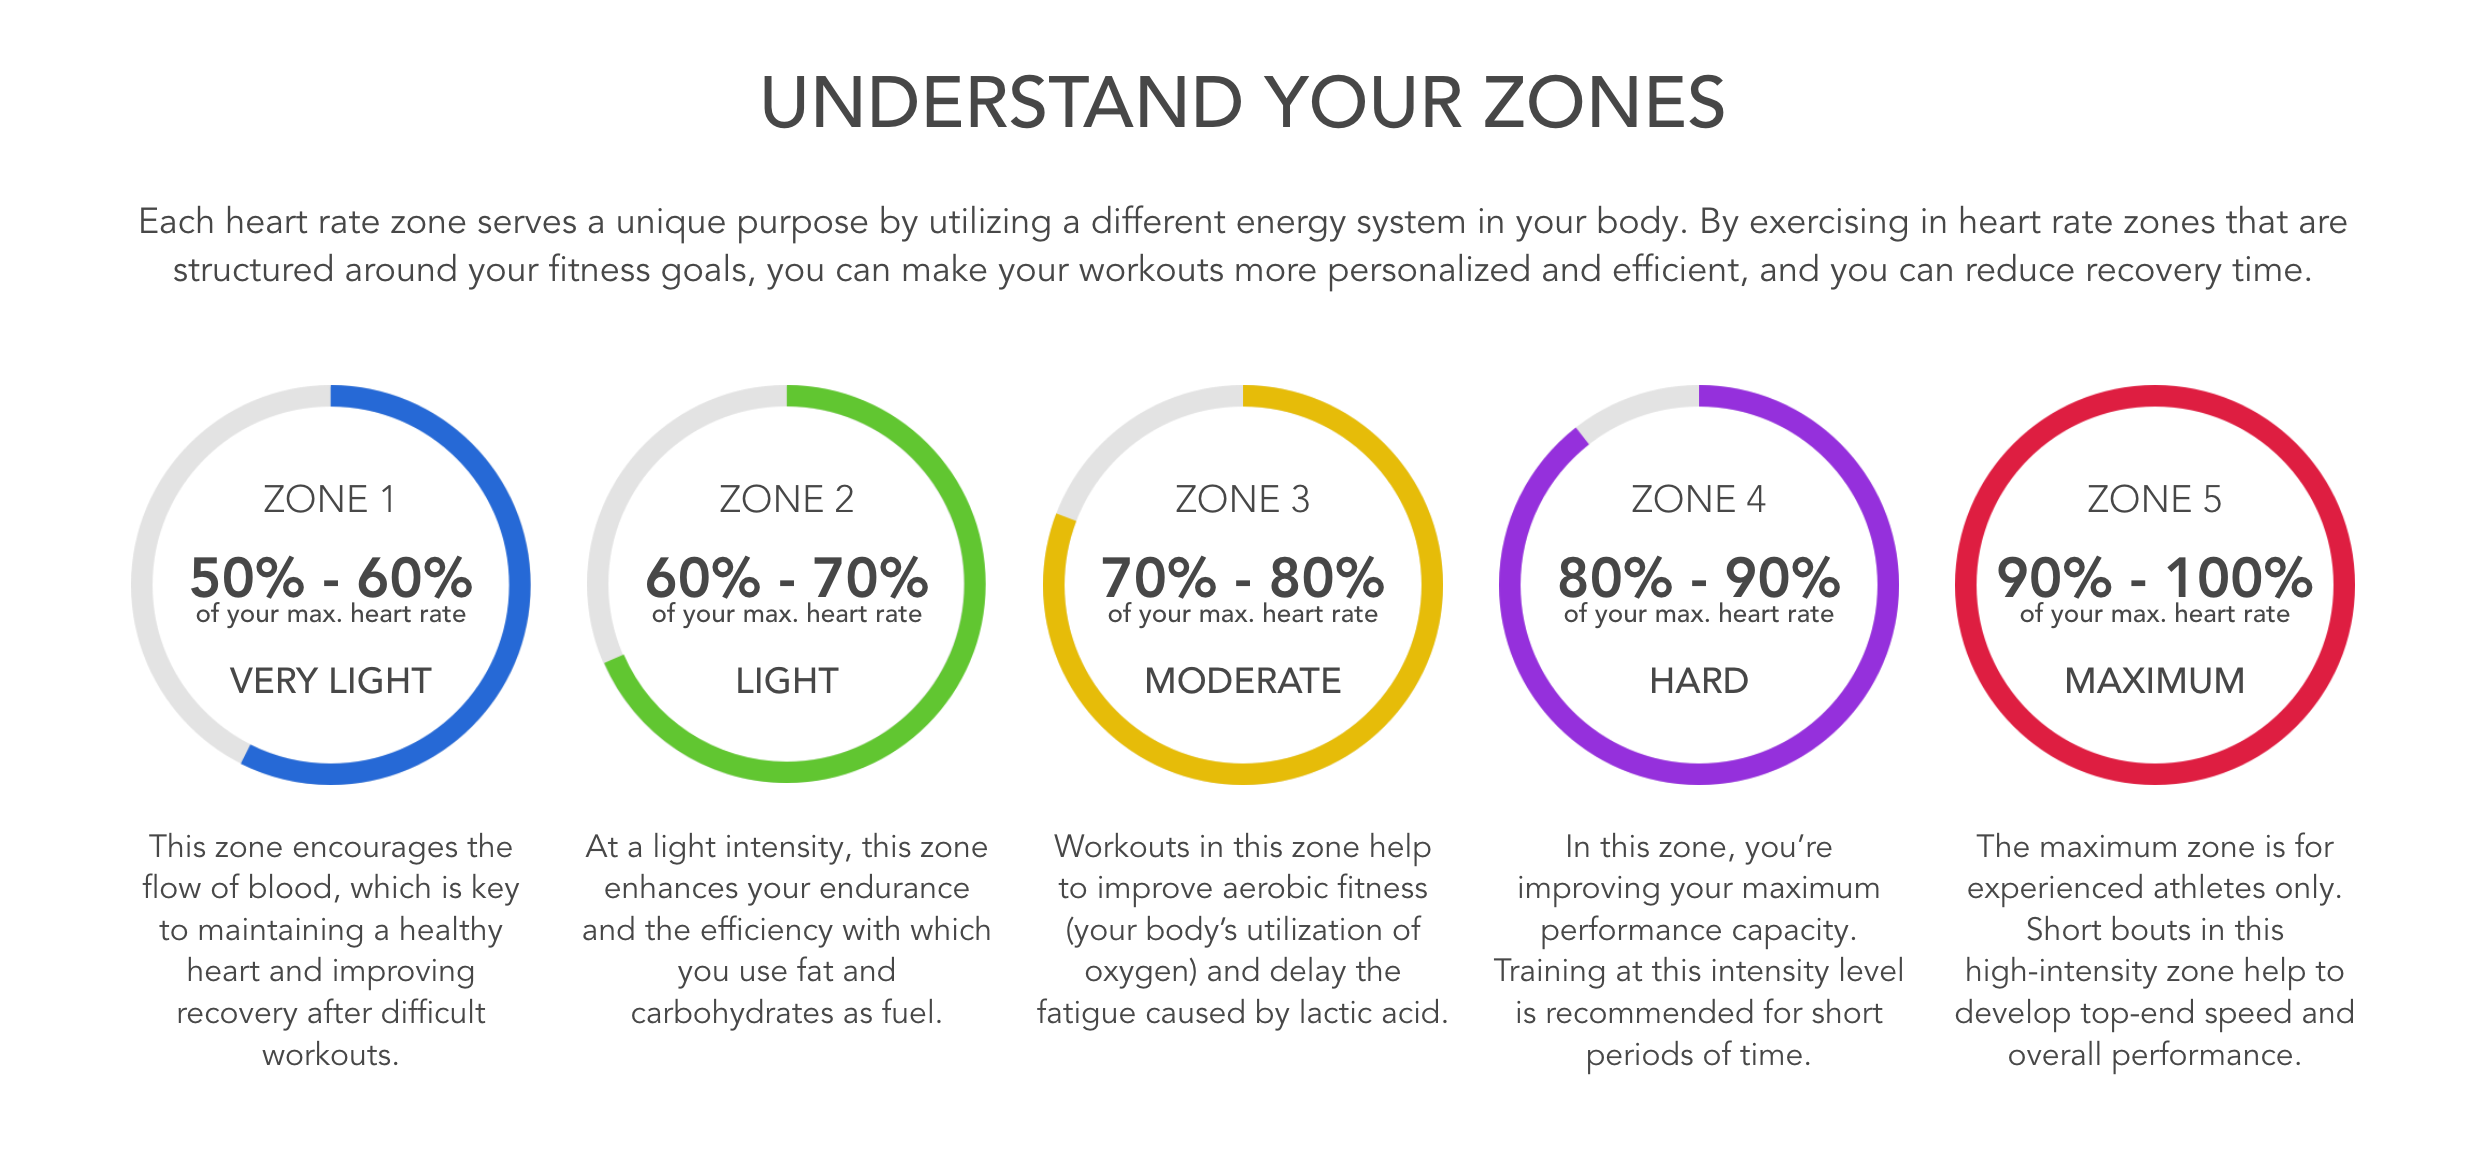 Each heart rate zone serves a unique purpose by utilizing a different energy system in your body.  By exercising in heart rate zones that are structured round your fitness goals, you can make your workouts more personalized and efficient, and you can reduce recovery time.